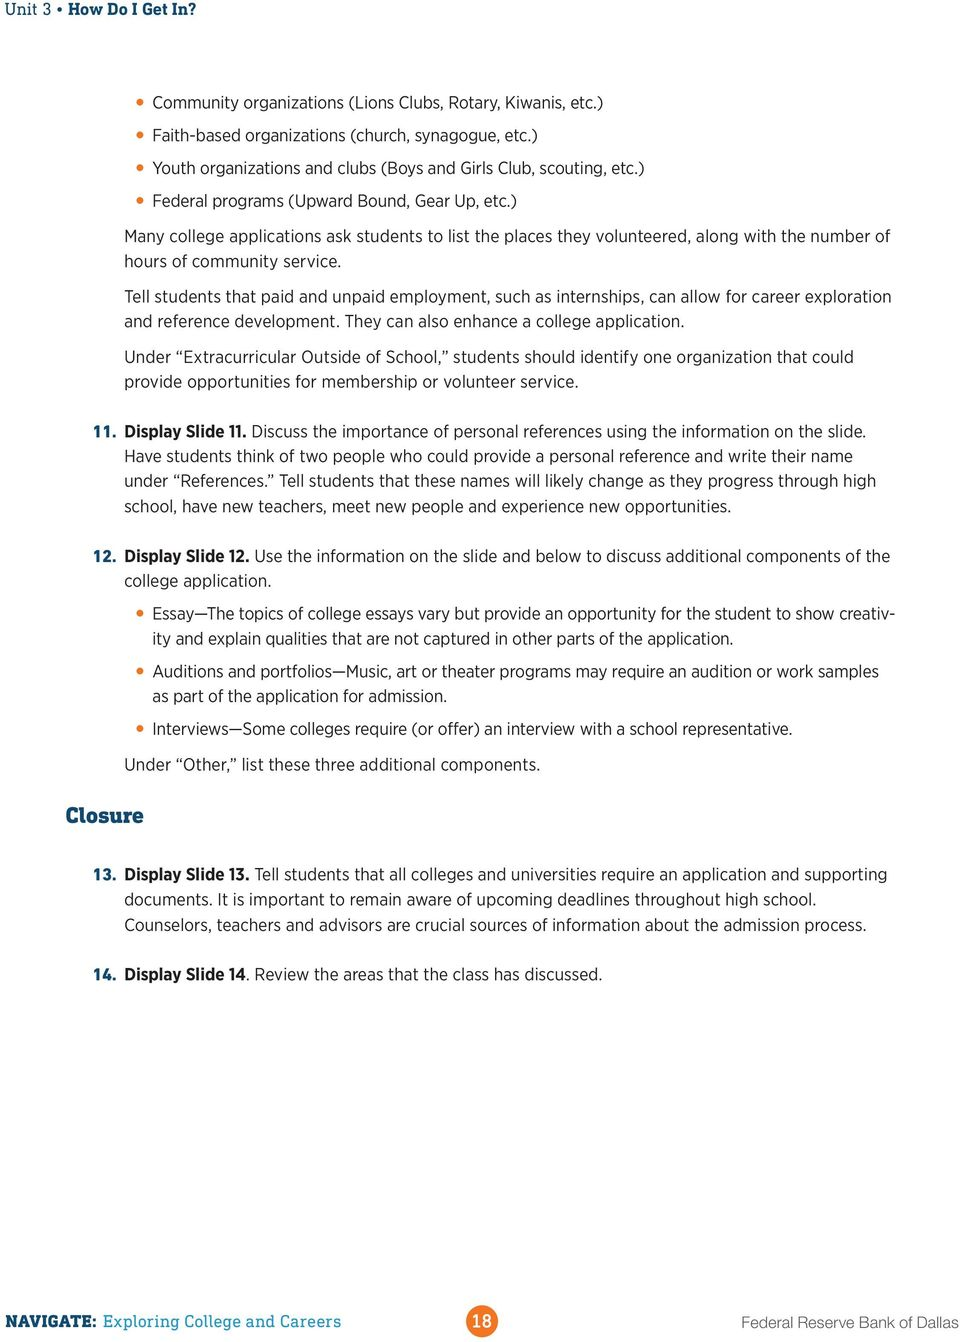 teacher handbook navigate exploring college and careers pdf many college applications ask students to list the places they volunteered along the